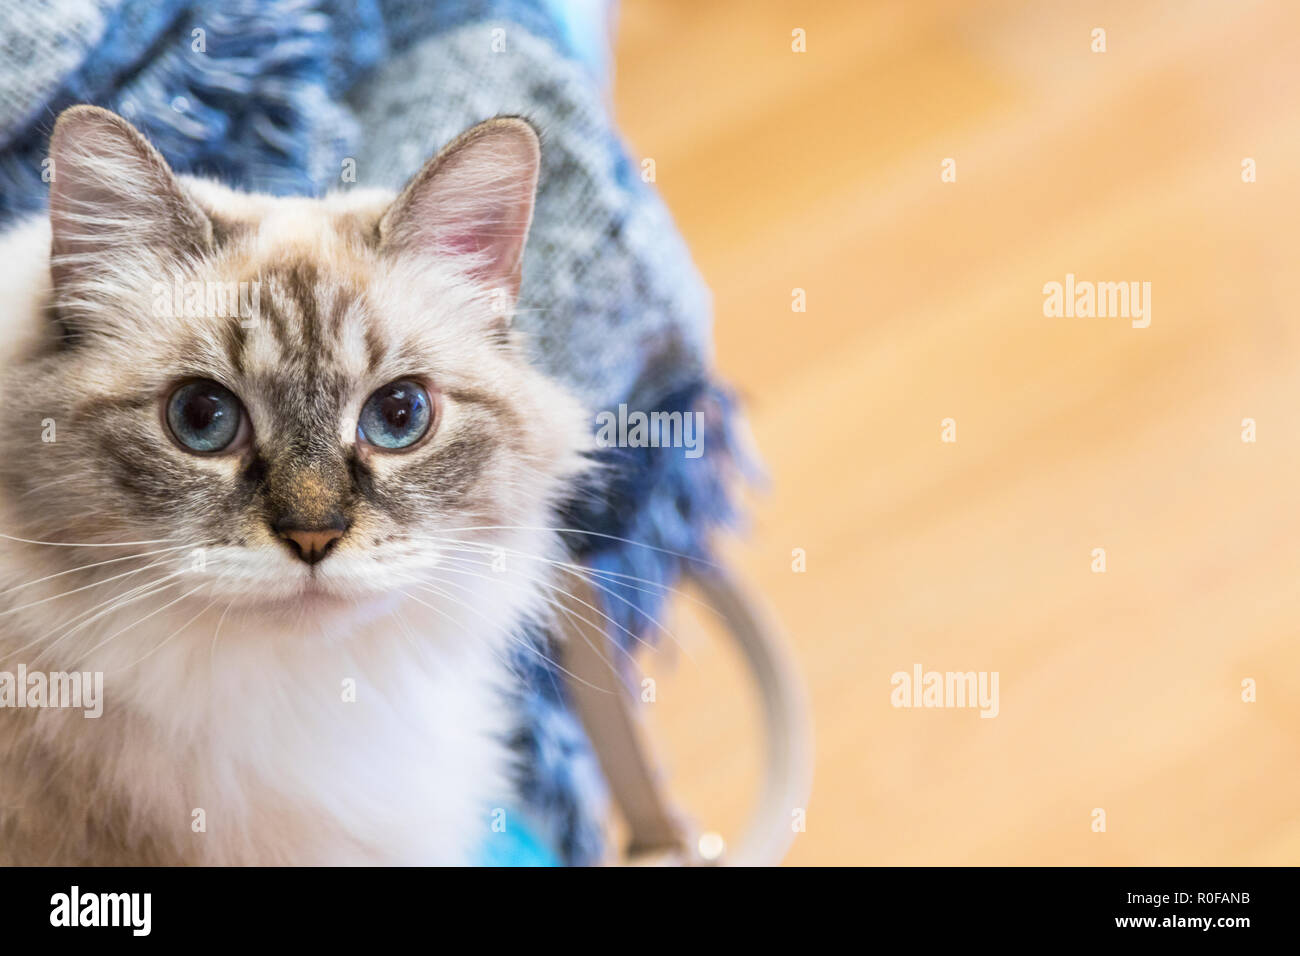 Beauty domestic cat at home, siberian breed - Stock Image